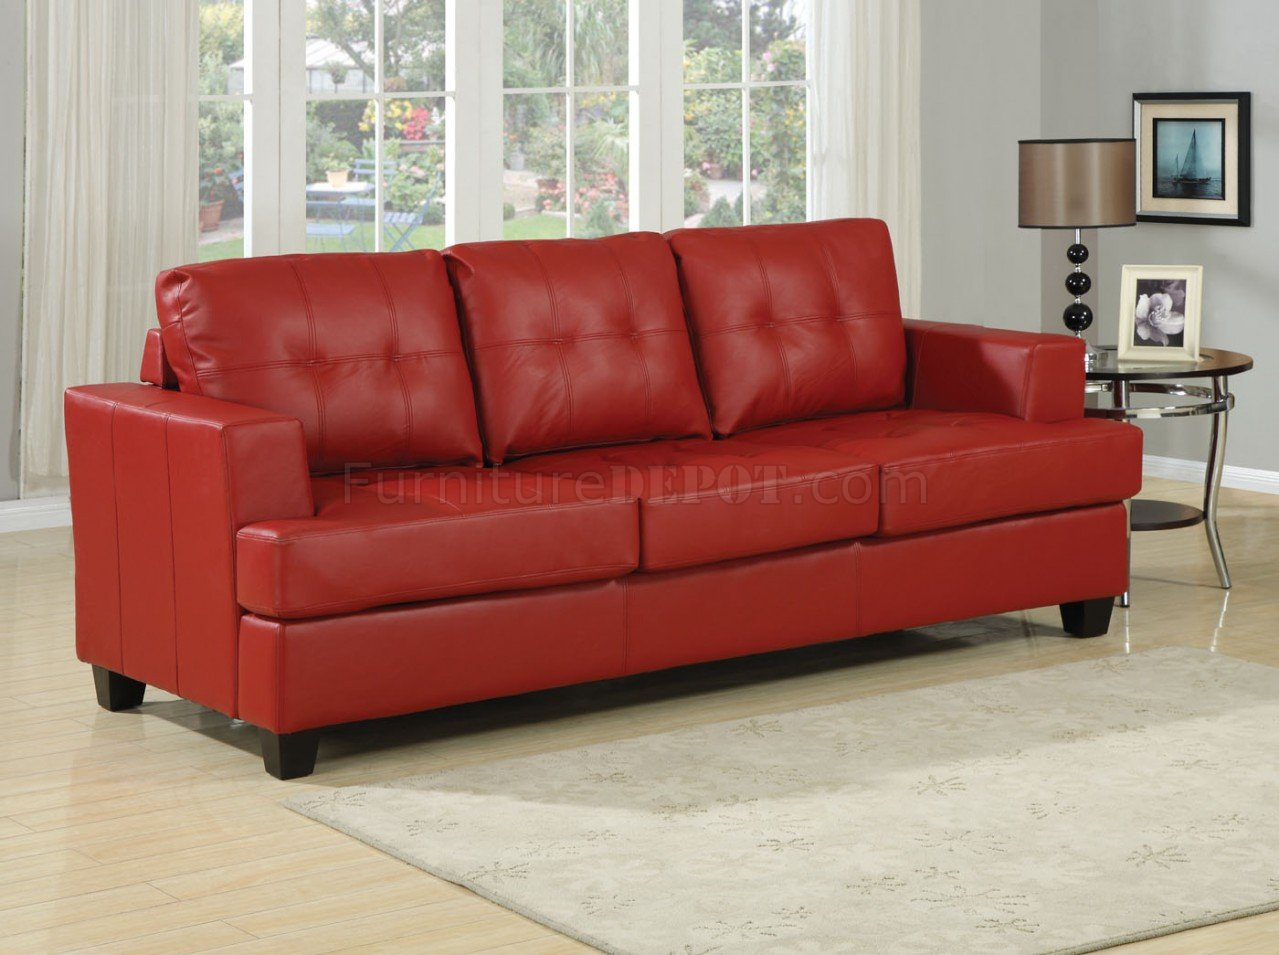 Red Bonded Leather Modern Sofa WQueen Size Sleeper